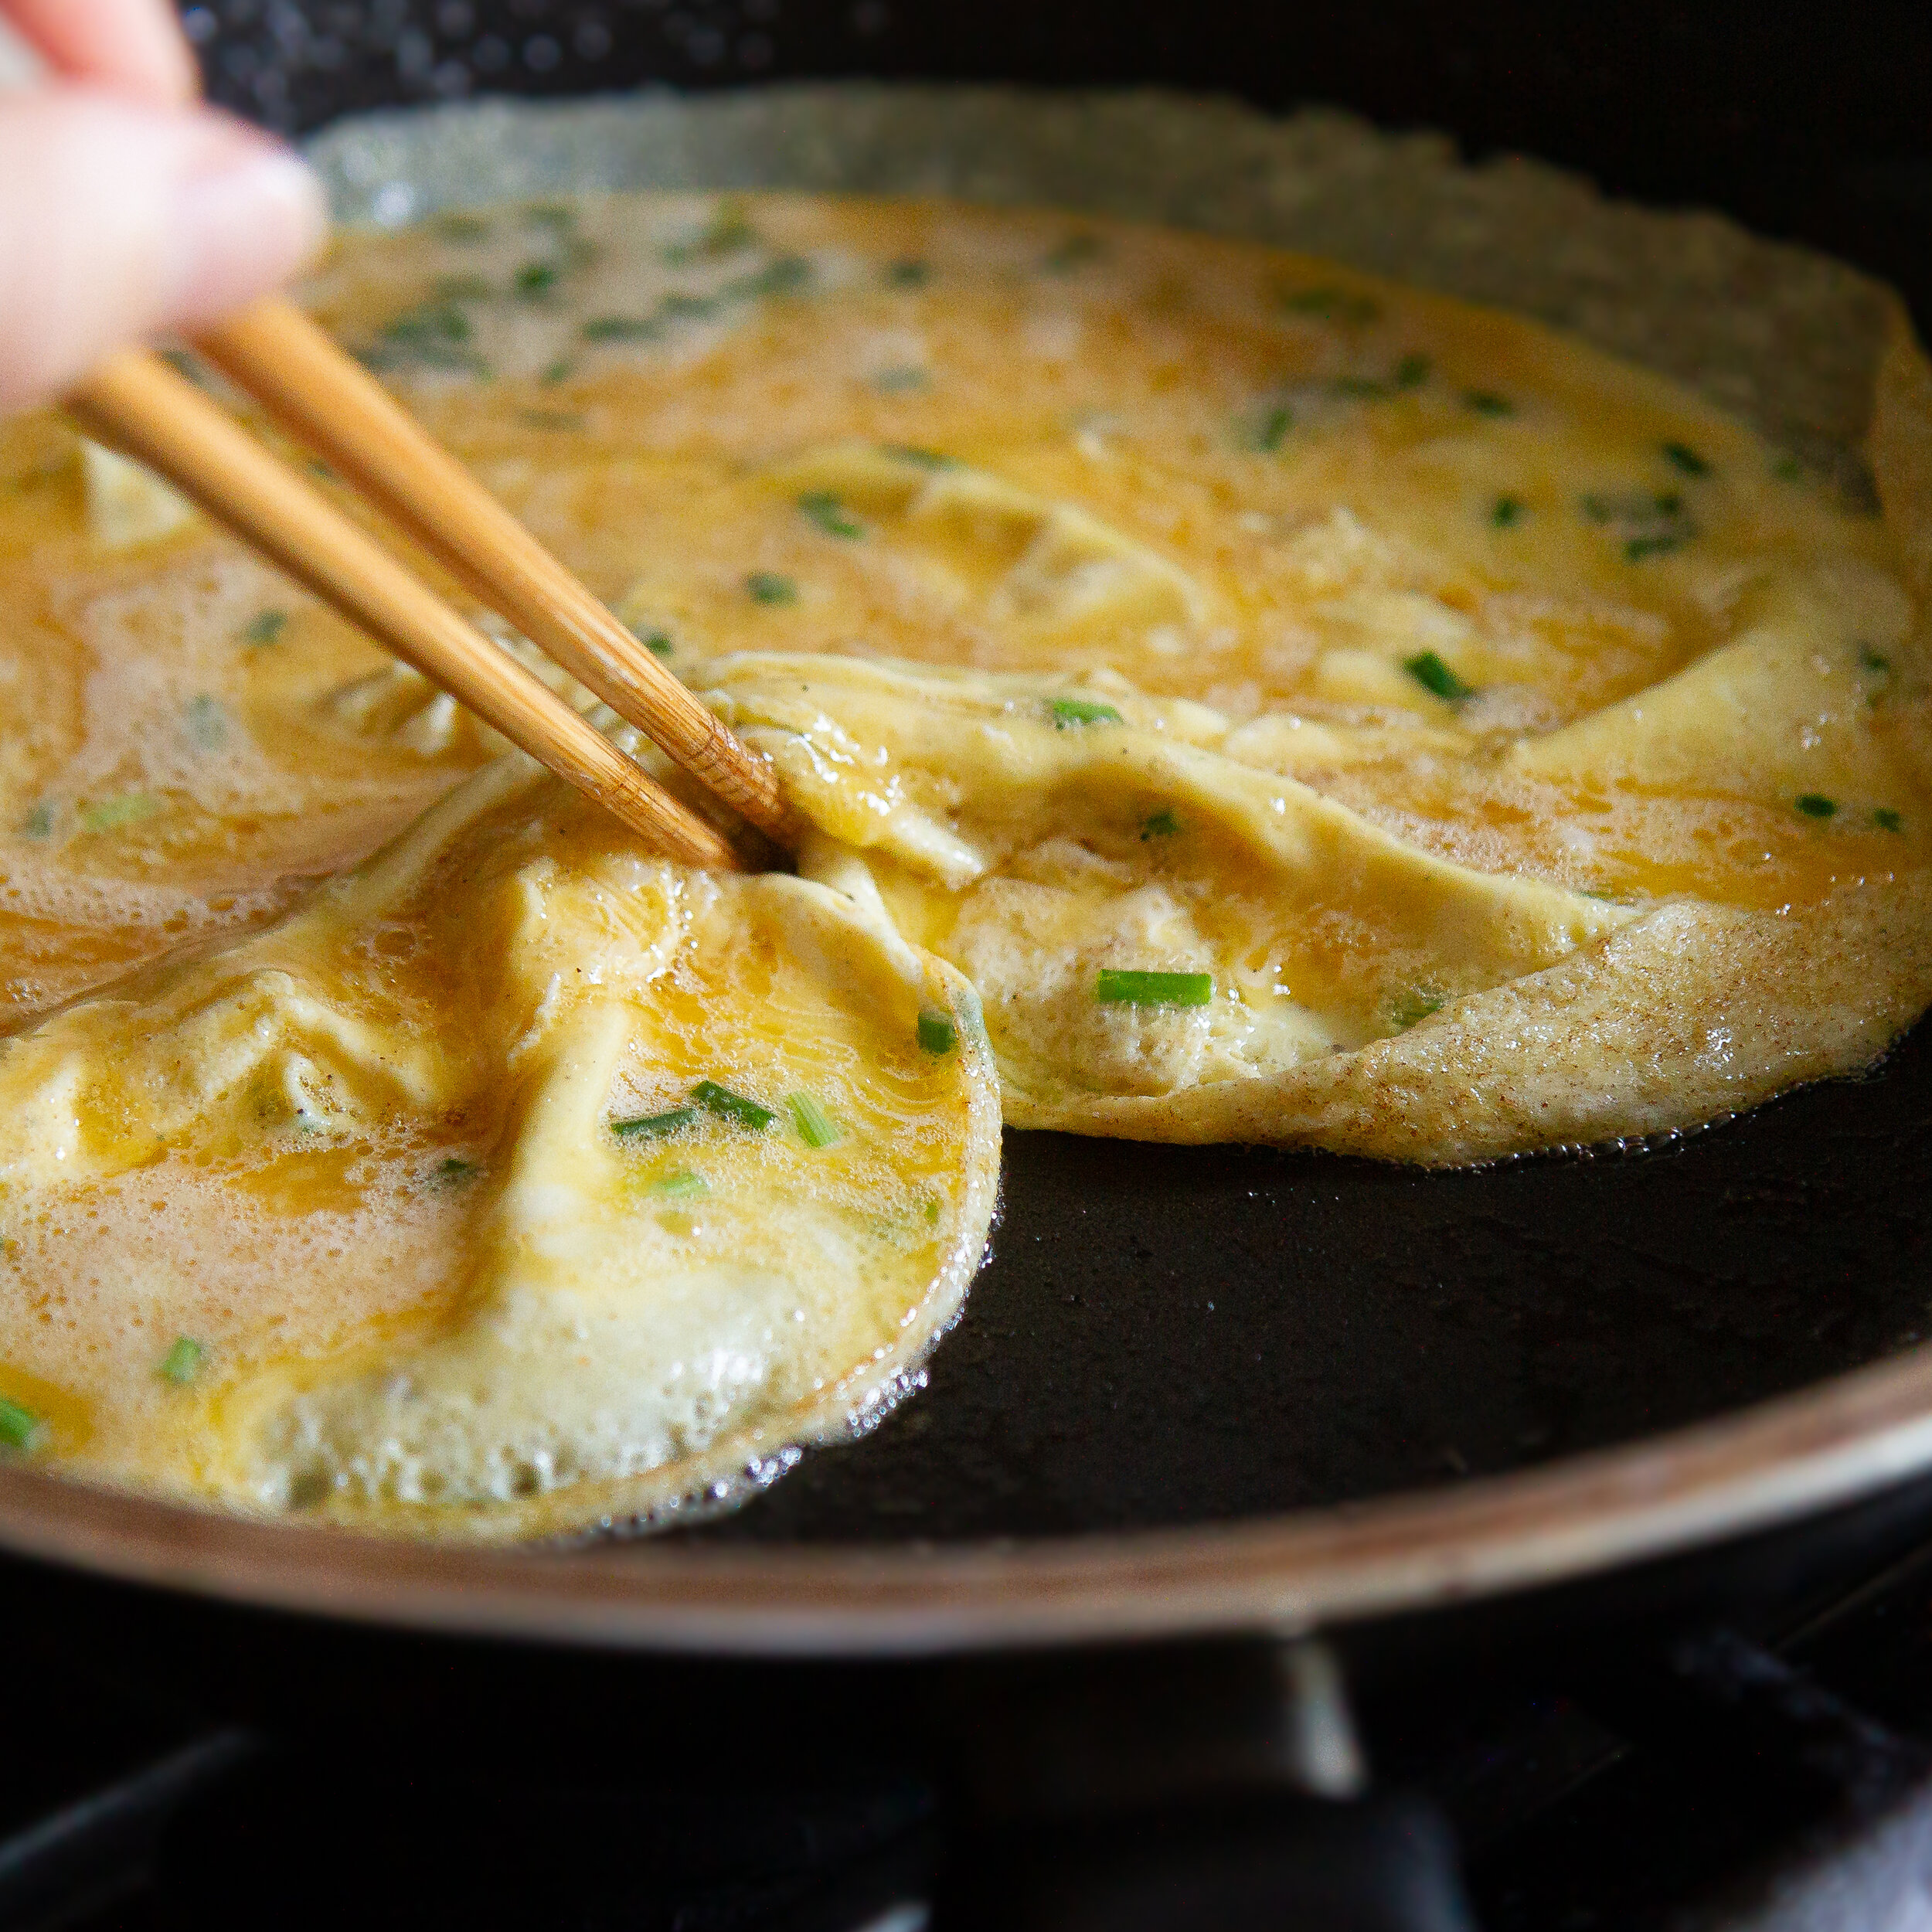 Easy Vietnamese Scrambled Eggs with Green Onions (Trung Chien Hanh La)